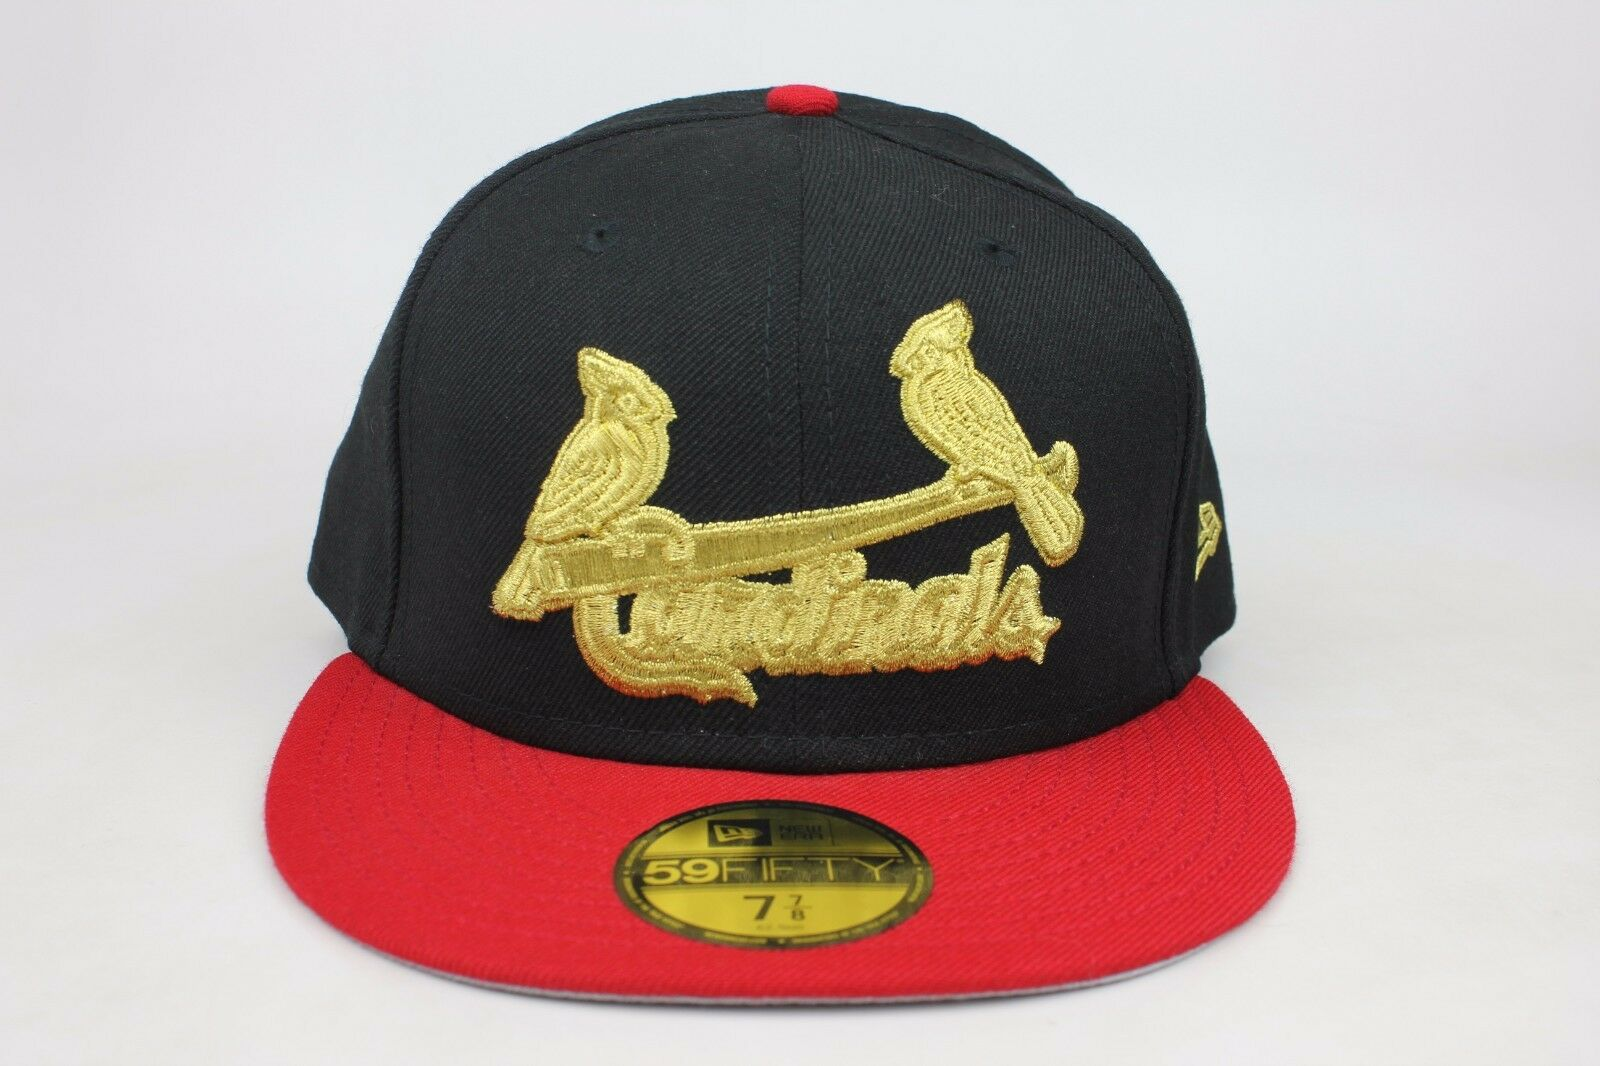 St. Louis Cardinals Black / Red Lid / Gold Logo Hat New Era 59Fifty Fitted Hat Logo EB 8361a5